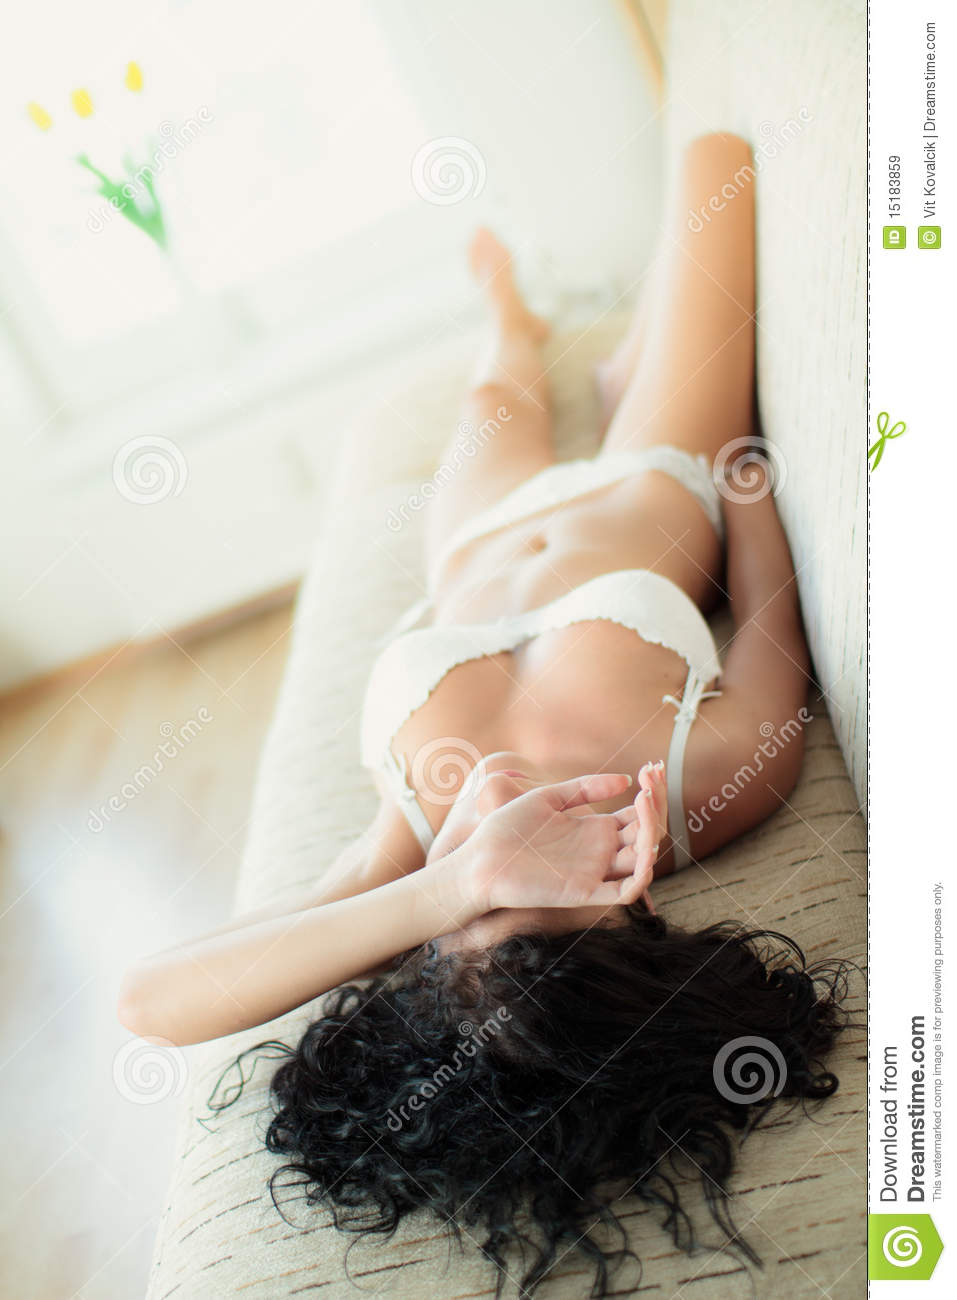 aromas bbw dating site I have several family members and friends who are considered to be plus-size,  and they've sometimes struggled in their dating lives because.